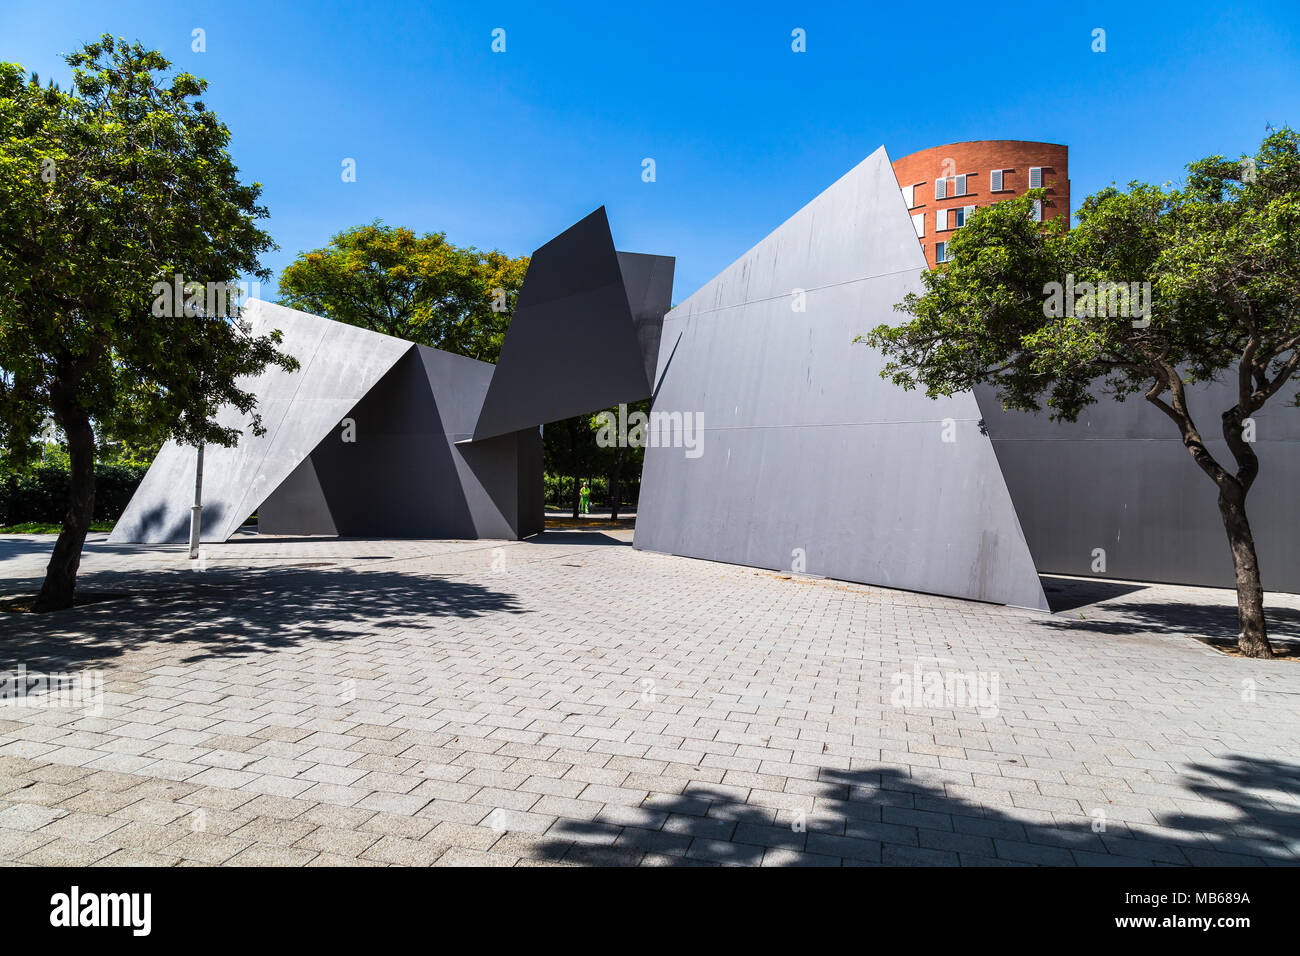 Sculpture of steel plates in trapezoidal forms - Stock Image